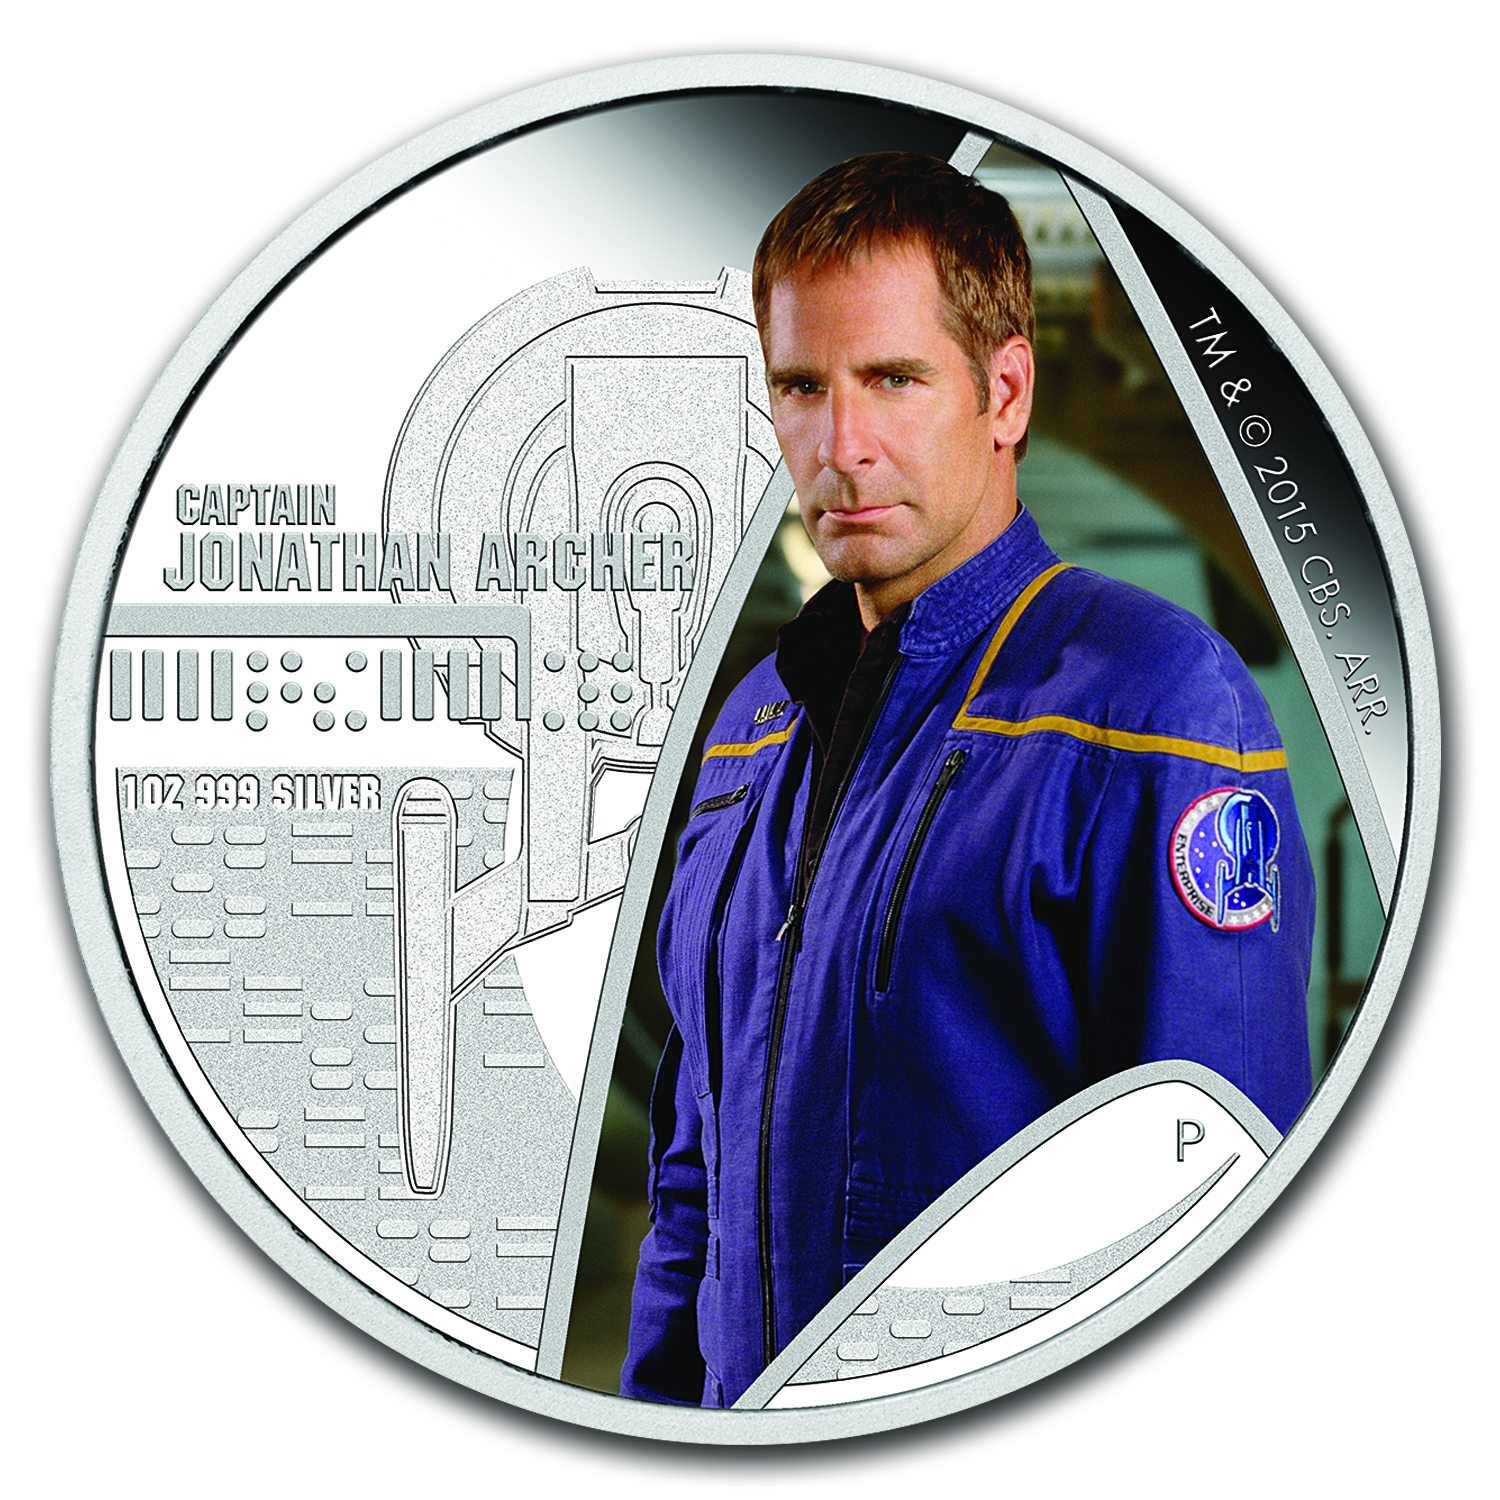 2015 Tuvalu 1 oz Silver Star Trek Colorized Capt. Archer Proof